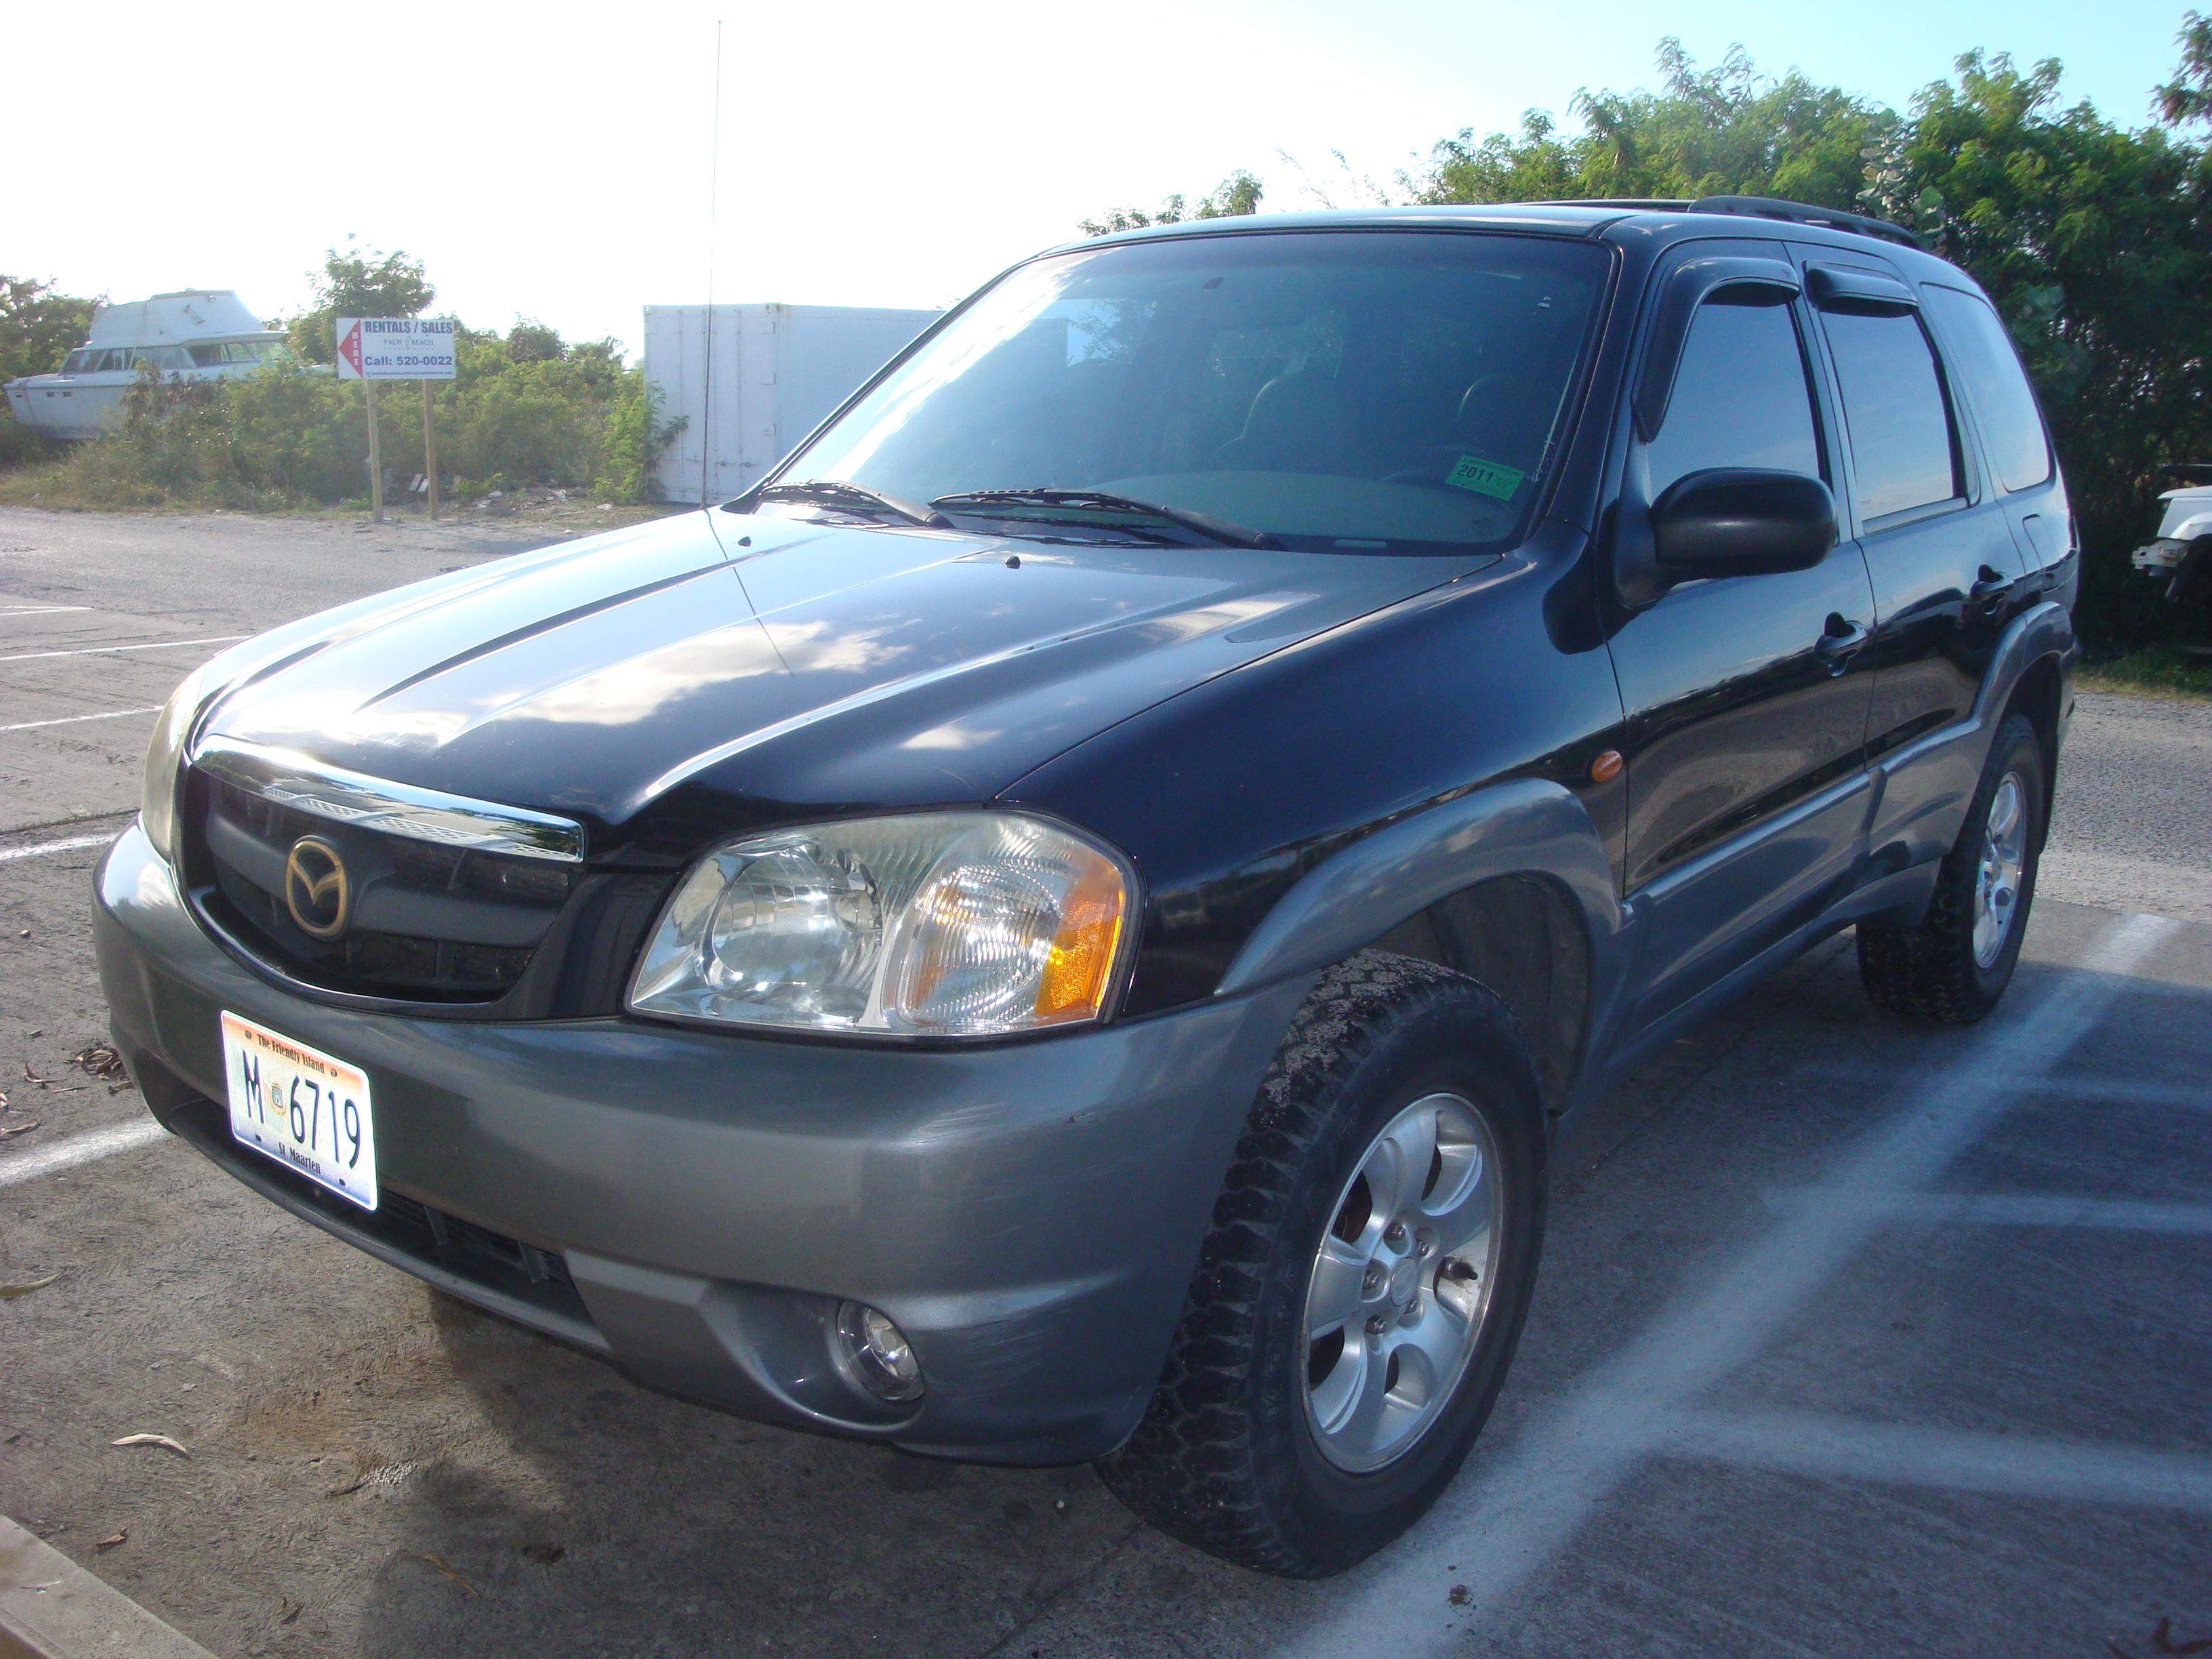 2001 mazda tribute suv black for sale 3900 obo auc. Black Bedroom Furniture Sets. Home Design Ideas